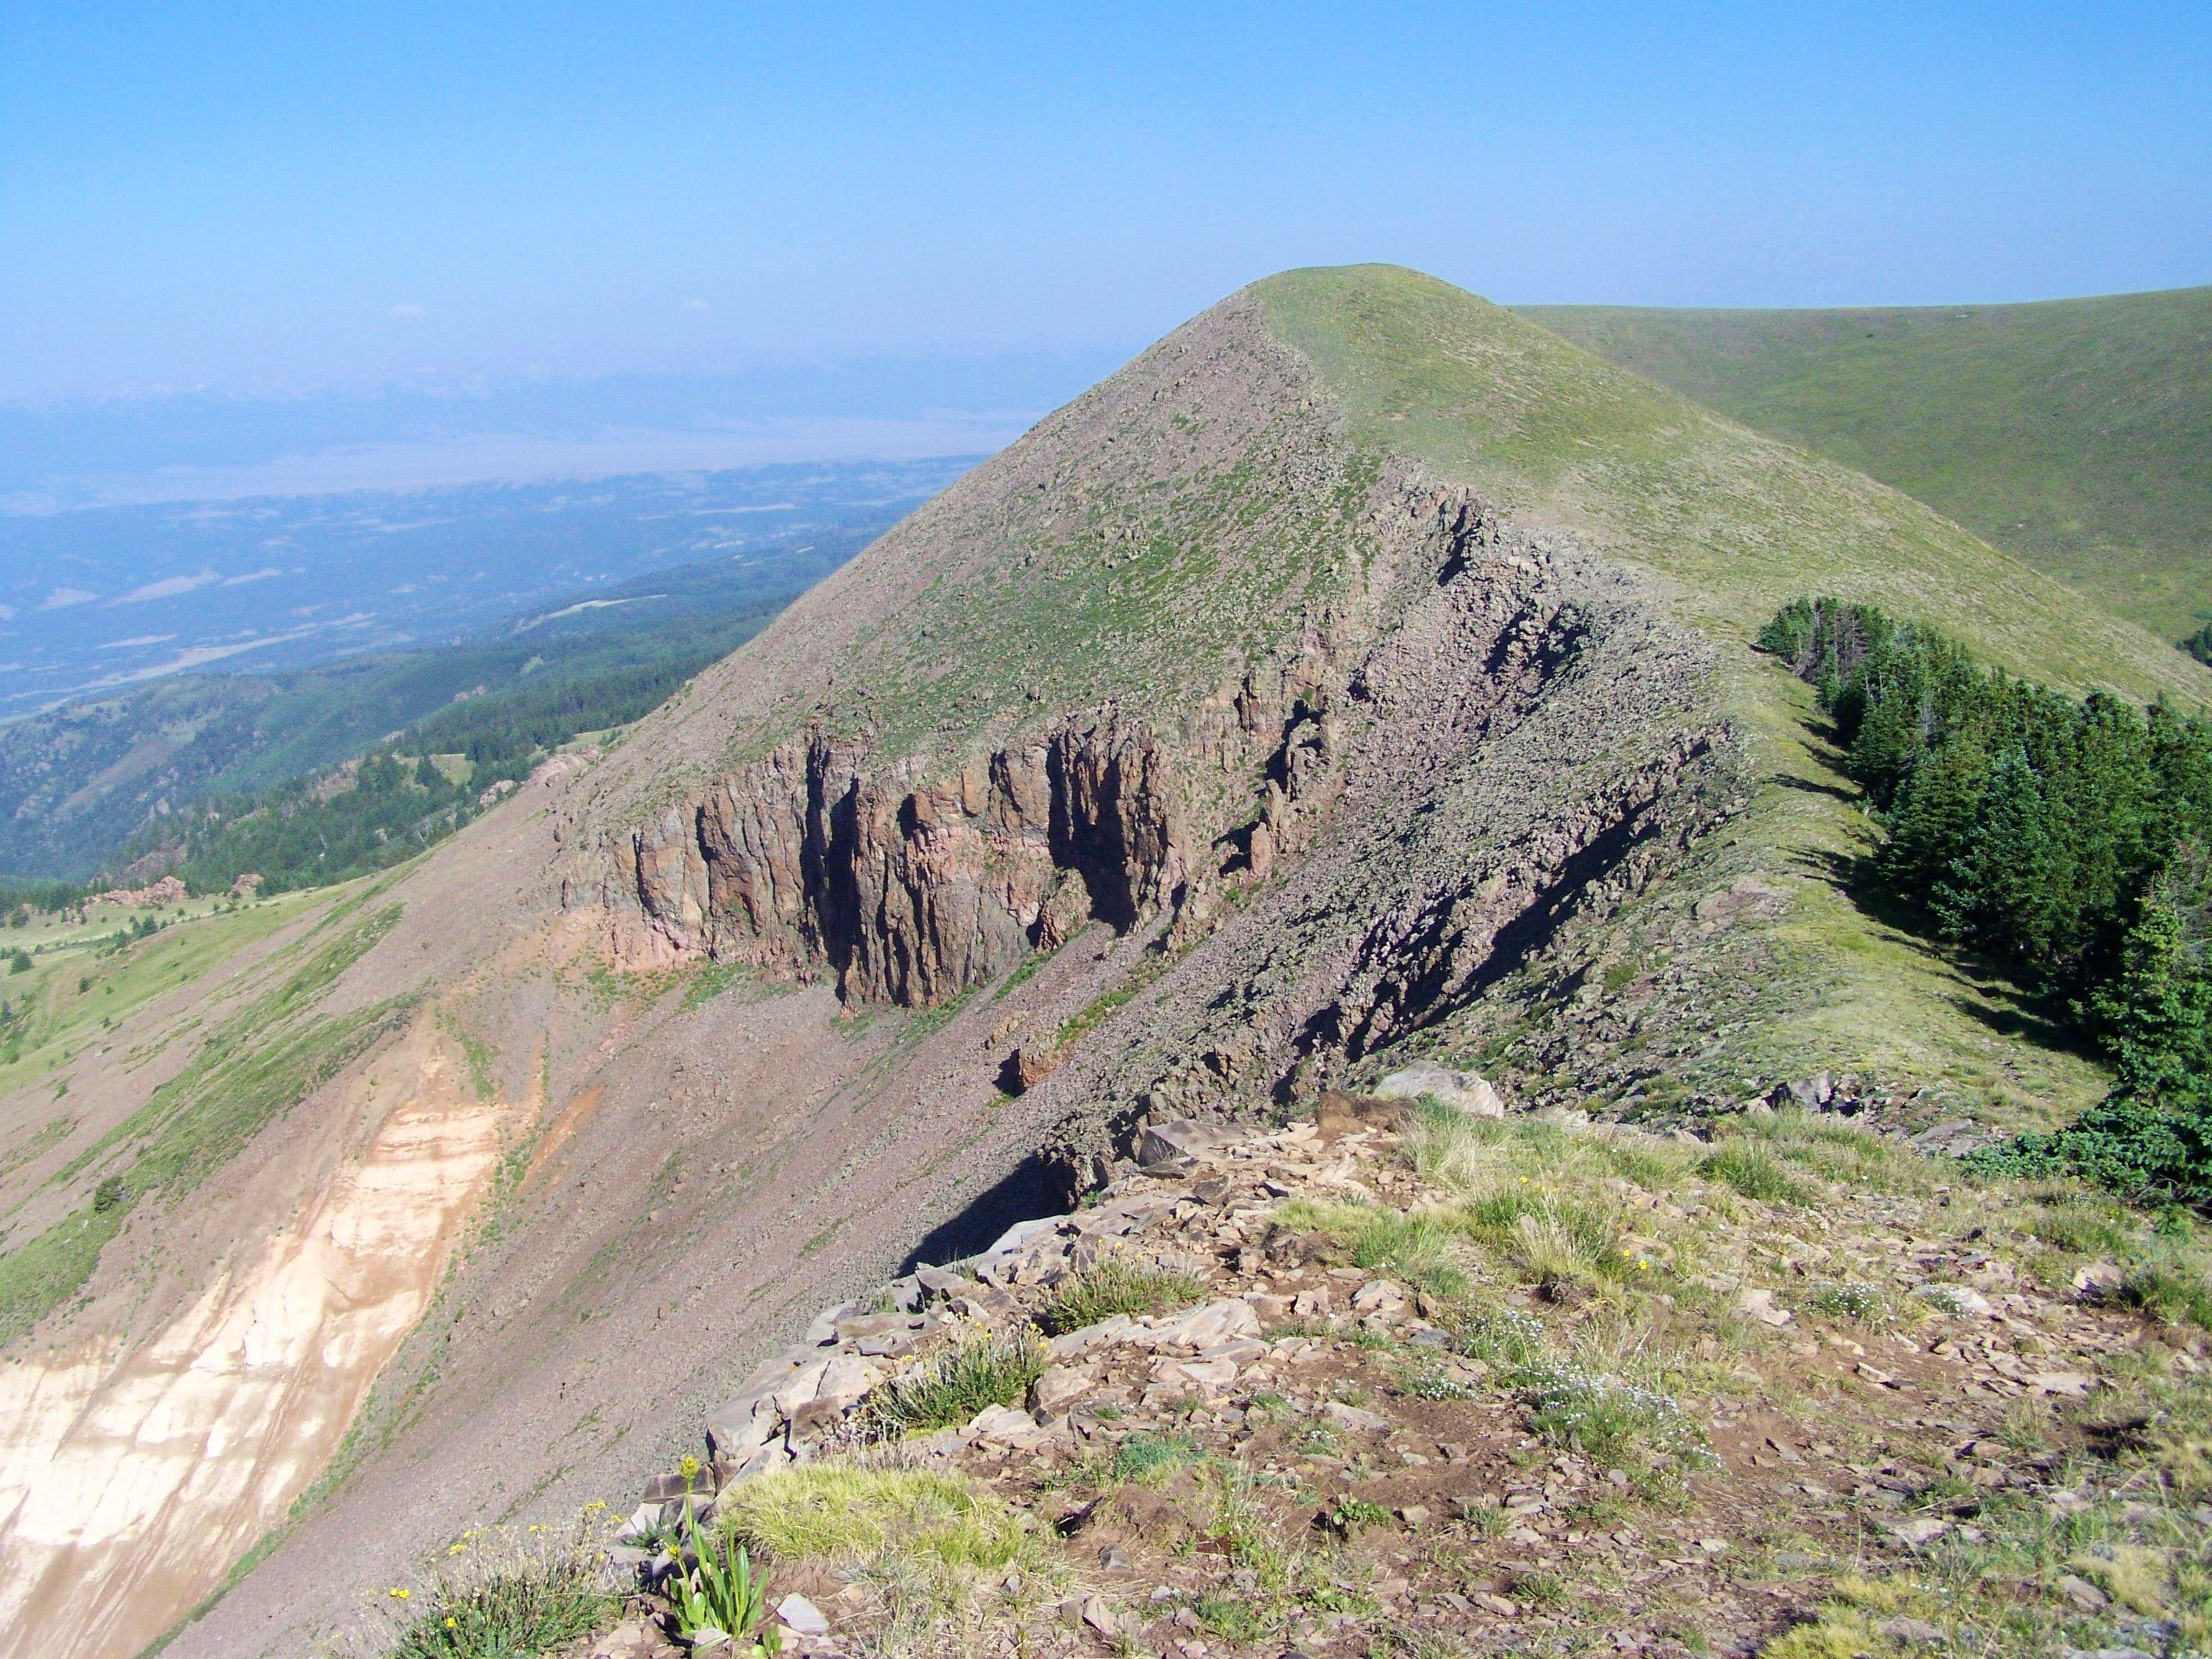 Greenhorn Mountain